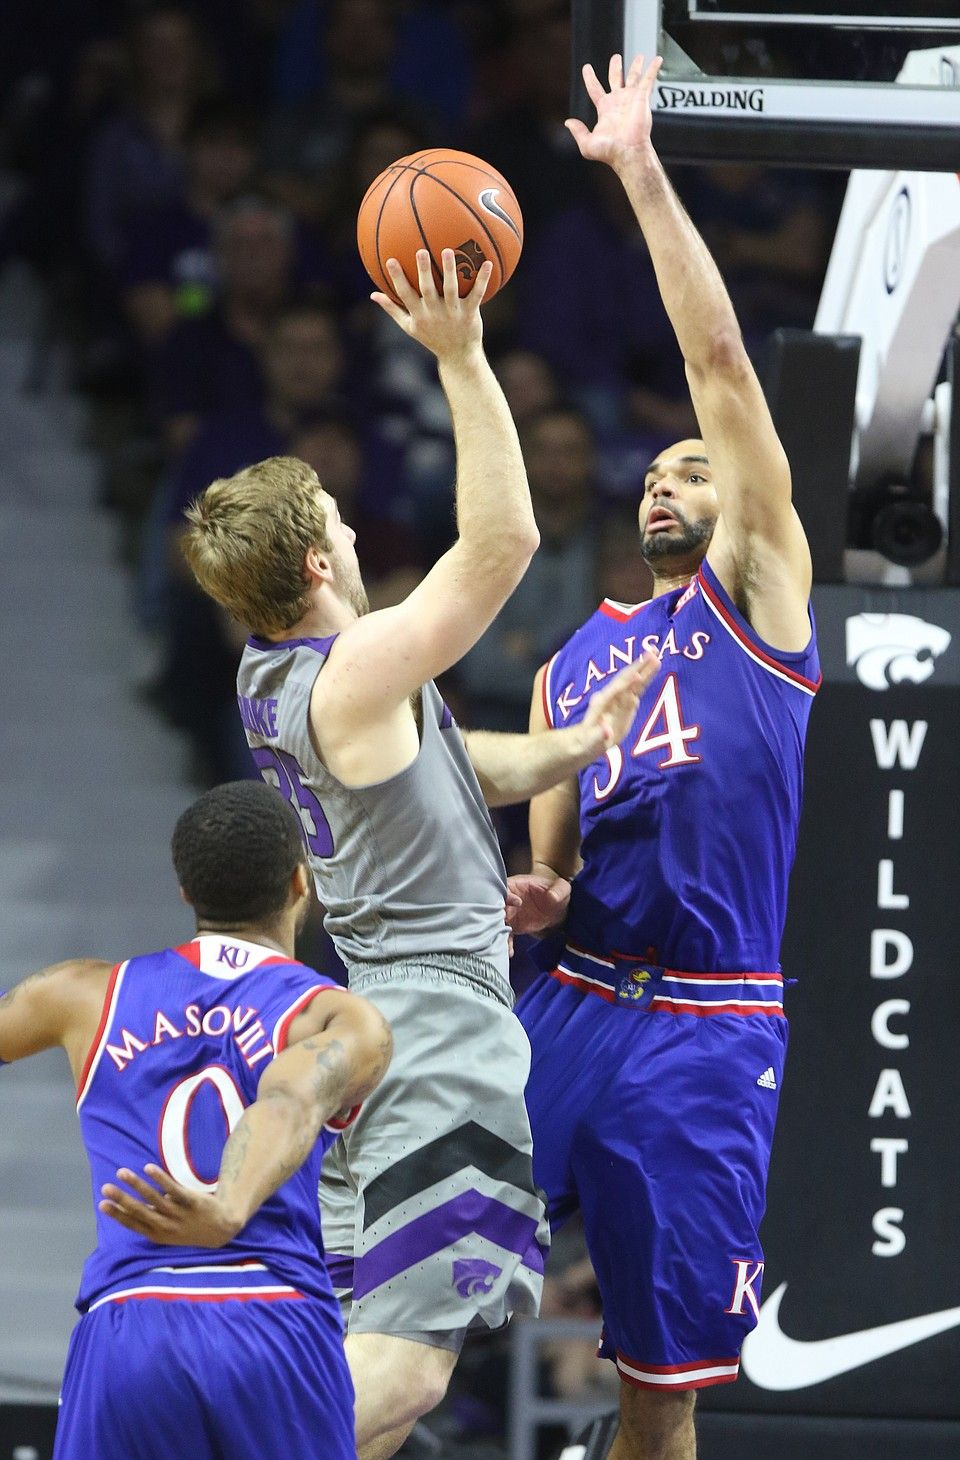 photo thumbnail Kansas basketball, Kansas state, Kansas